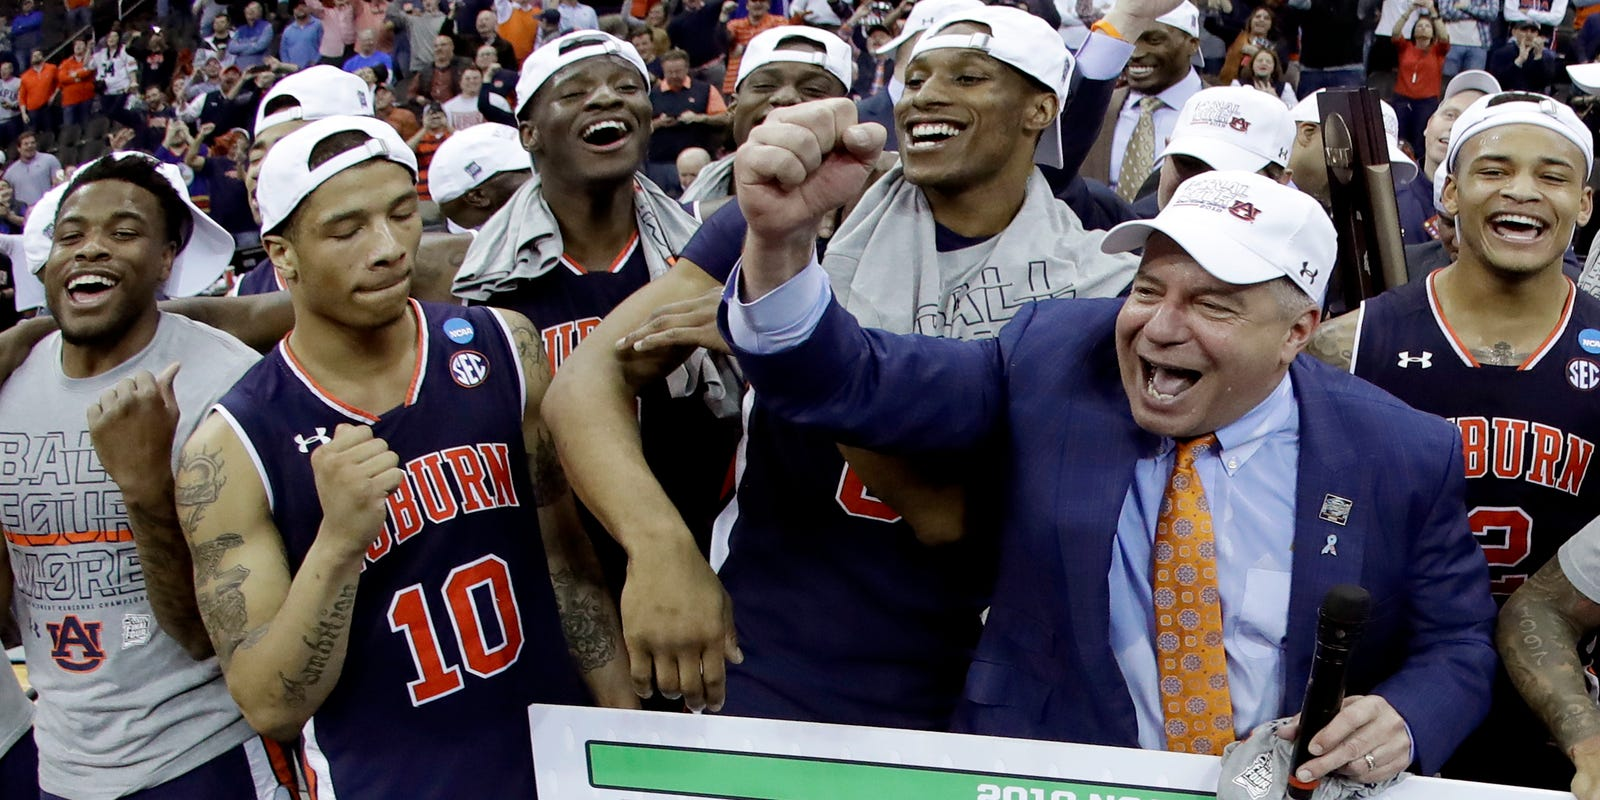 Making the case for Auburn to win national title at Final Four